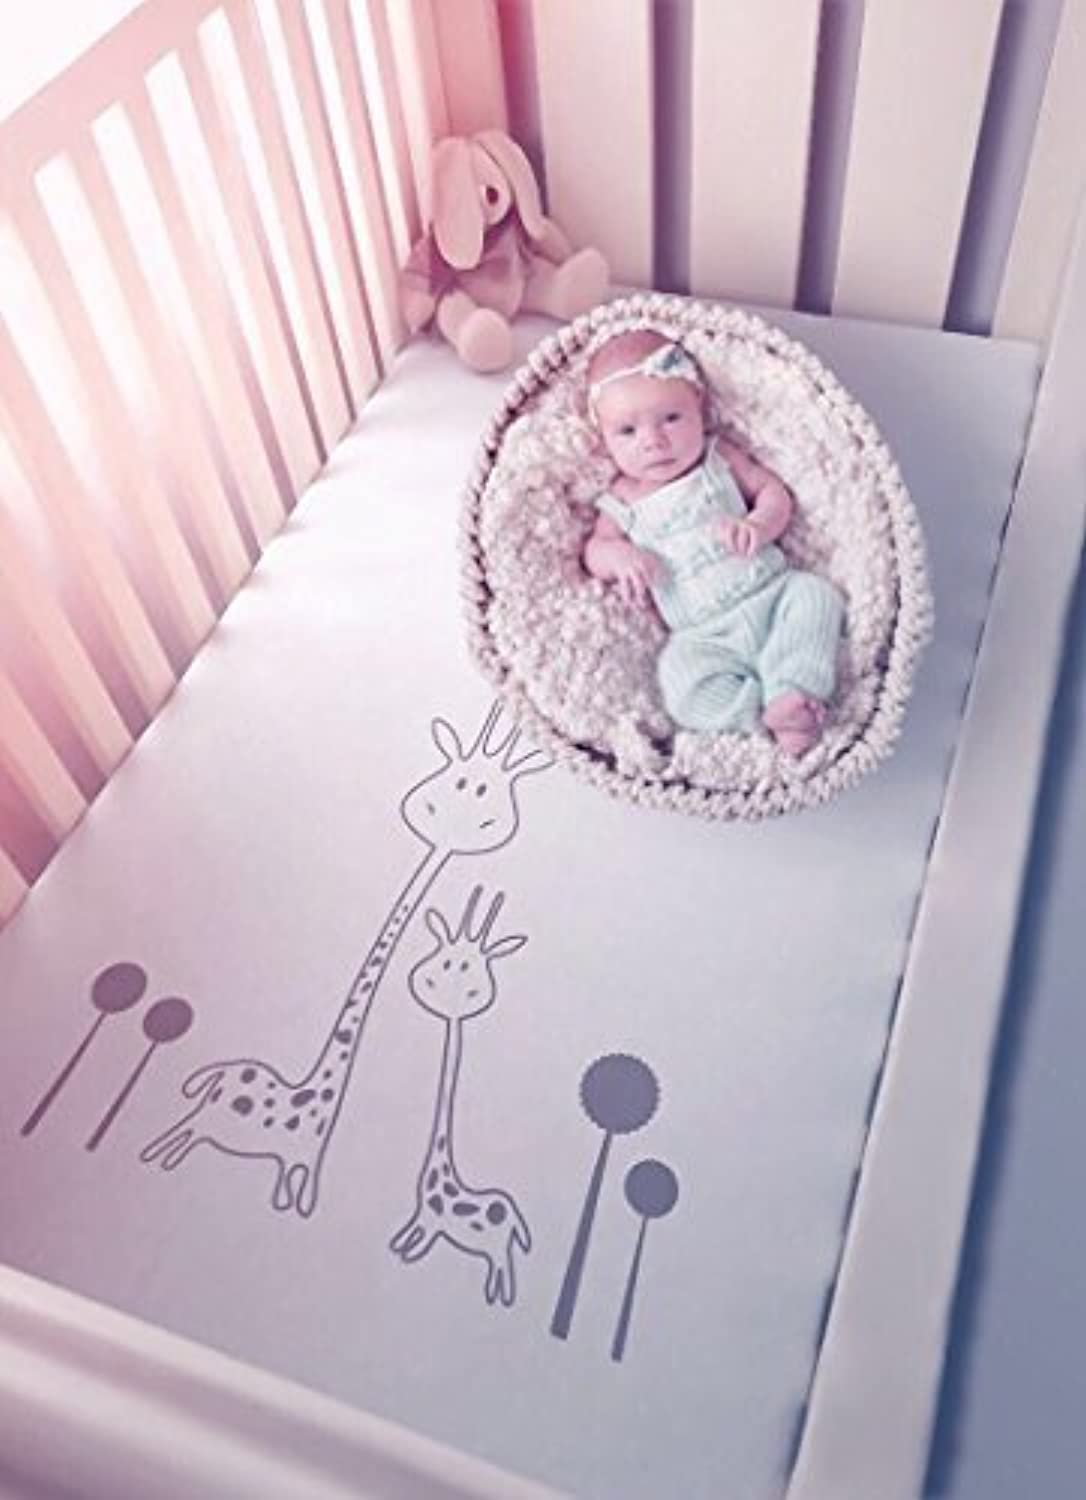 Baby Crib Sheet Set 2 Pack BabyJOX 100 Percent Egyptian Cotton Fitted Toddler Bed Mattress Sheets Jersey Soft Fabric Gender Neutral for Girl and Boy White Giraffe Solid Gray (Grey Girafe) [並行輸入品]